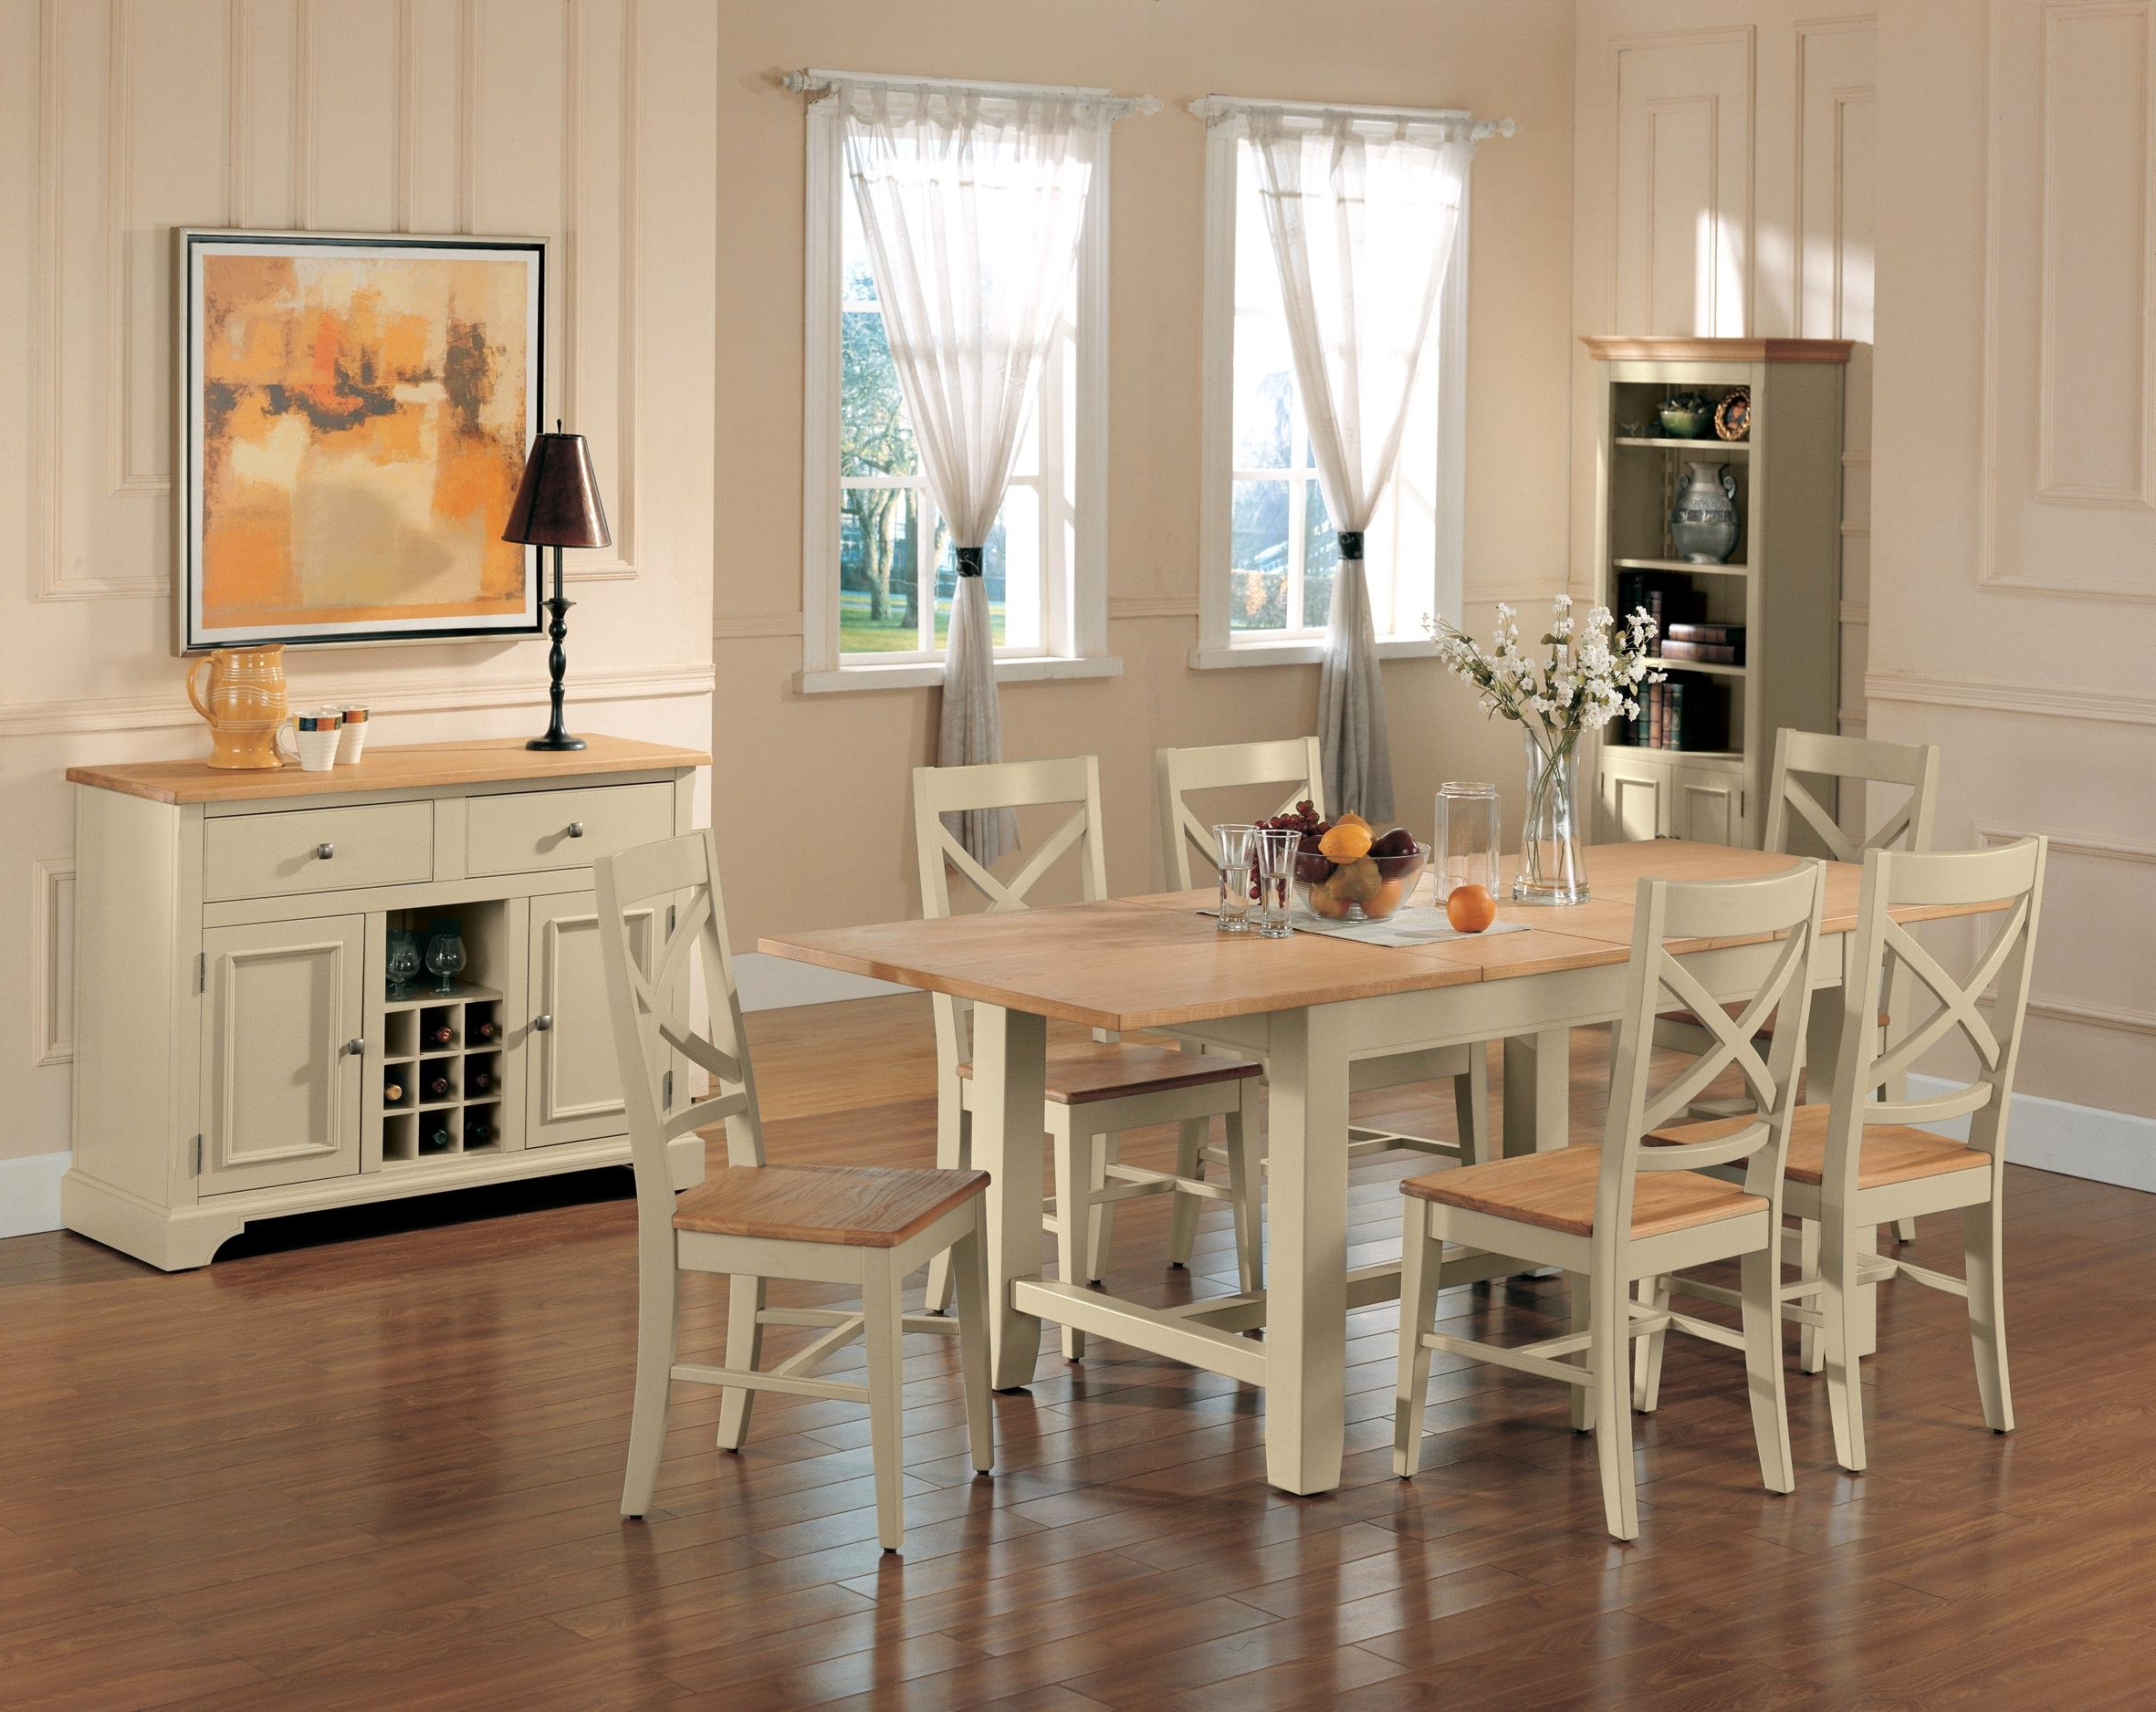 Trendy Wonderful Chic Dining Chairs Rooms Shabby Chic Dining Room Decor As Inside Shabby Chic Dining Chairs (View 9 of 25)